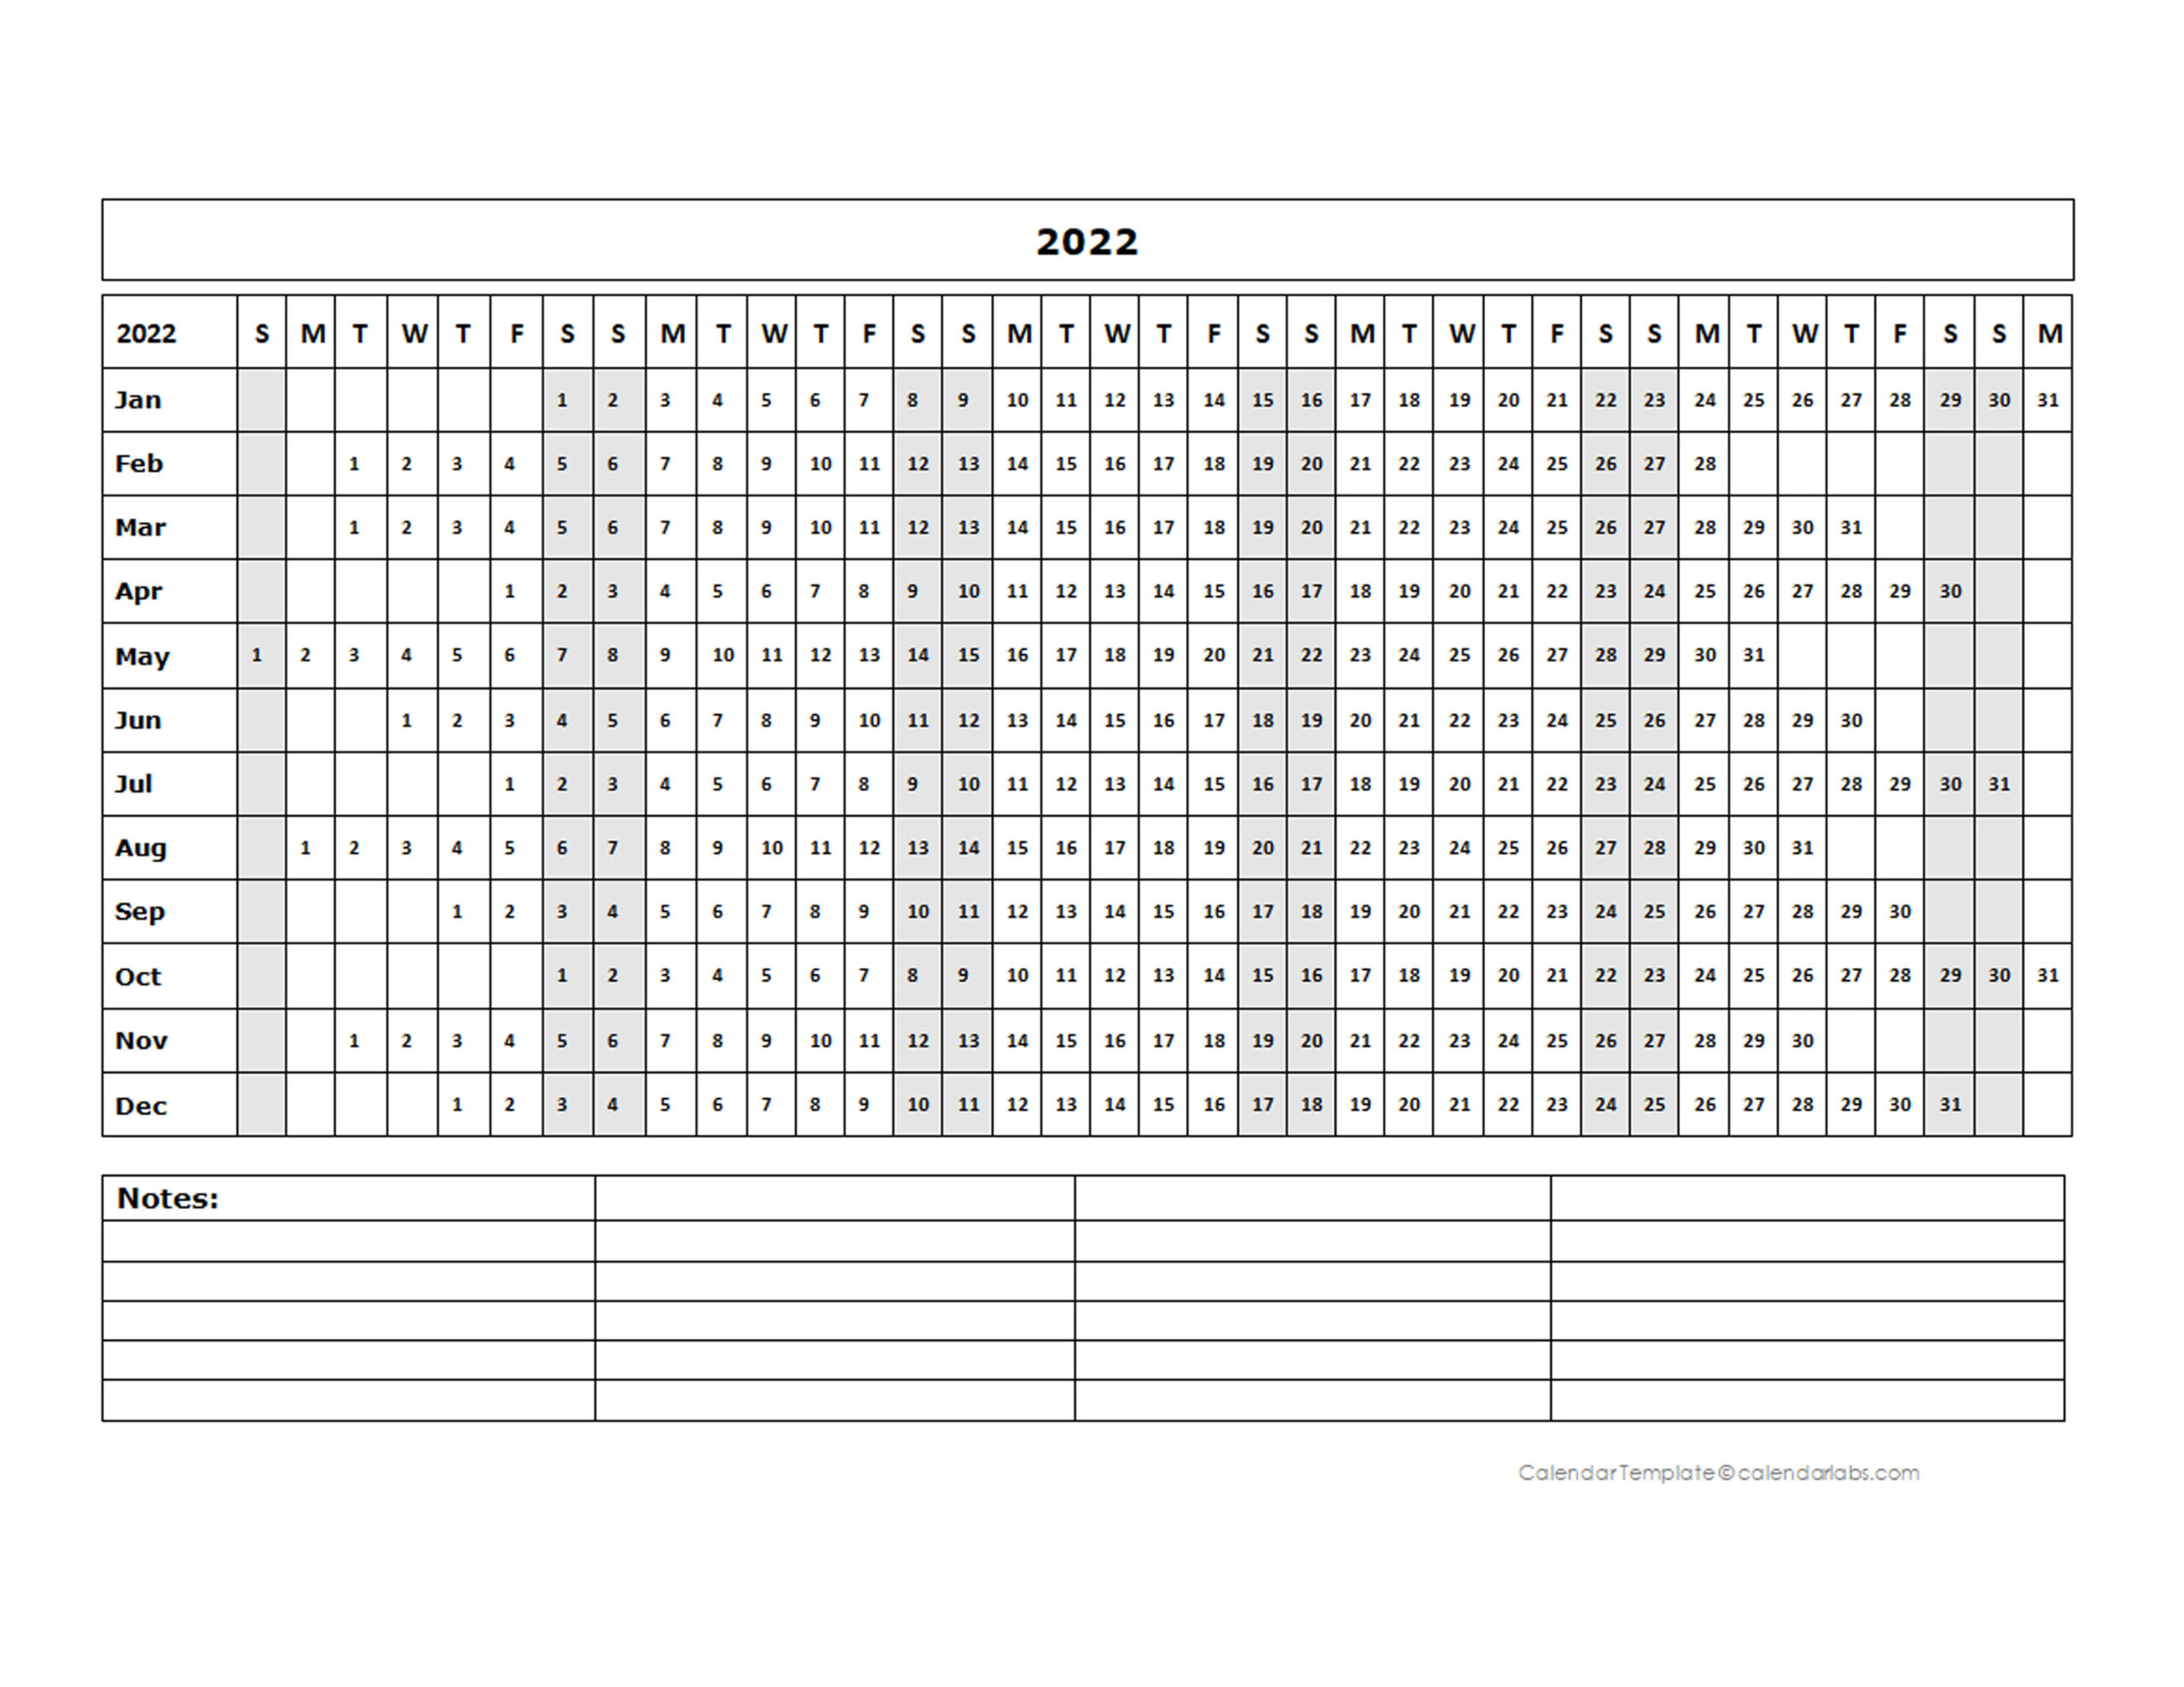 2022 Blank Landscape Yearly Calendar Template - Free pertaining to Julian Date Calendar For 2022